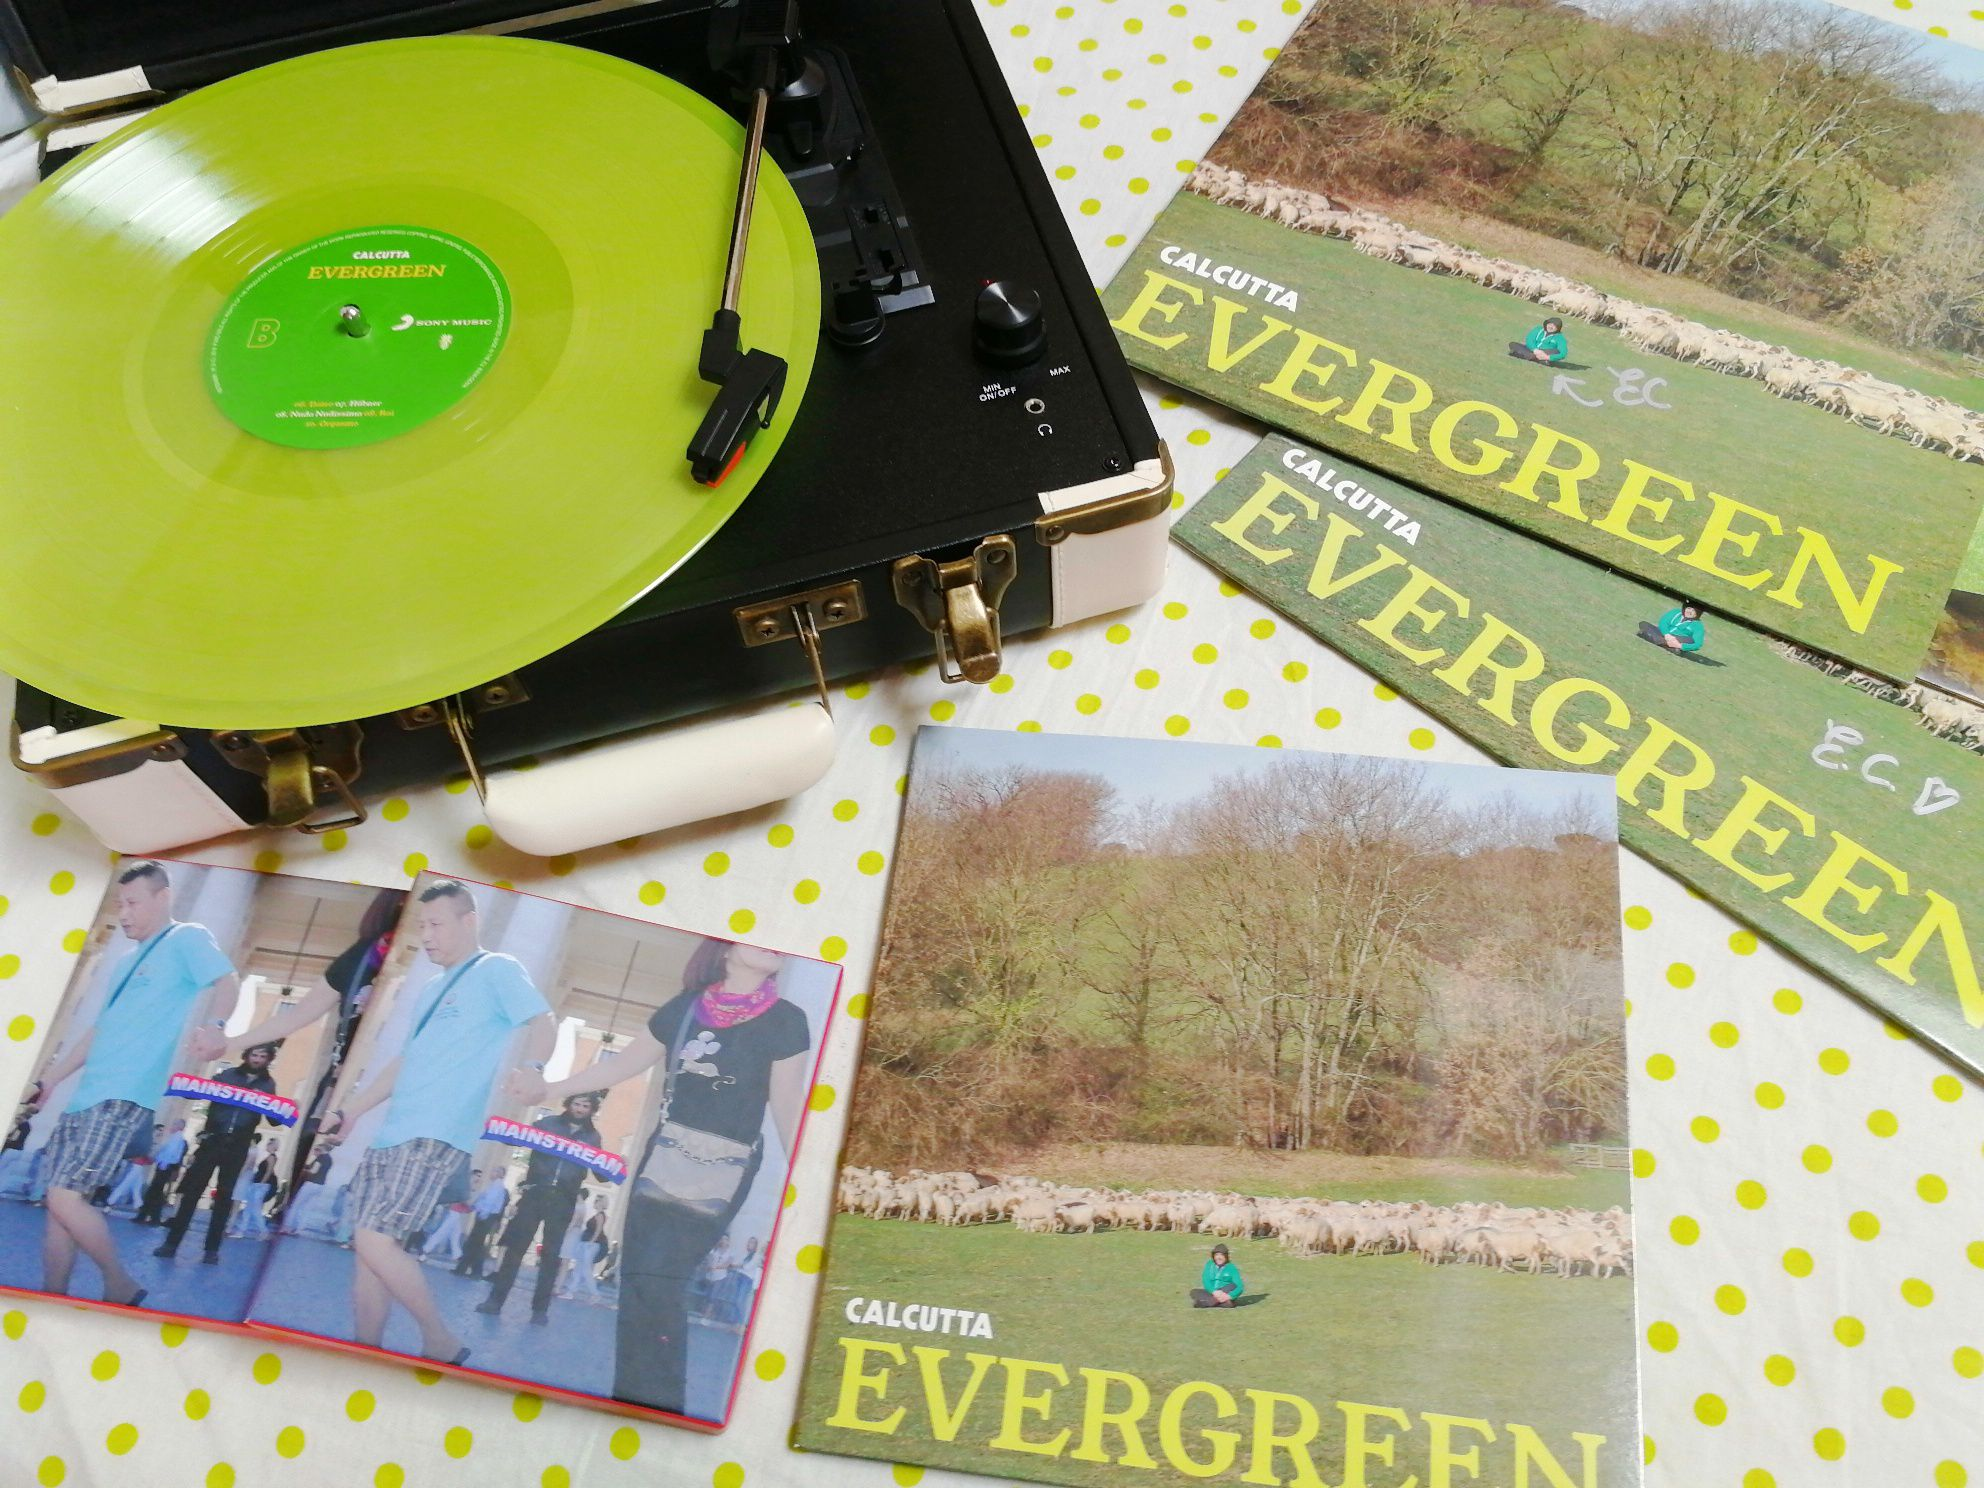 Calcutta - Evergreen album - indie italiana mausica 2018 - Pesto - green disk LP disco verde